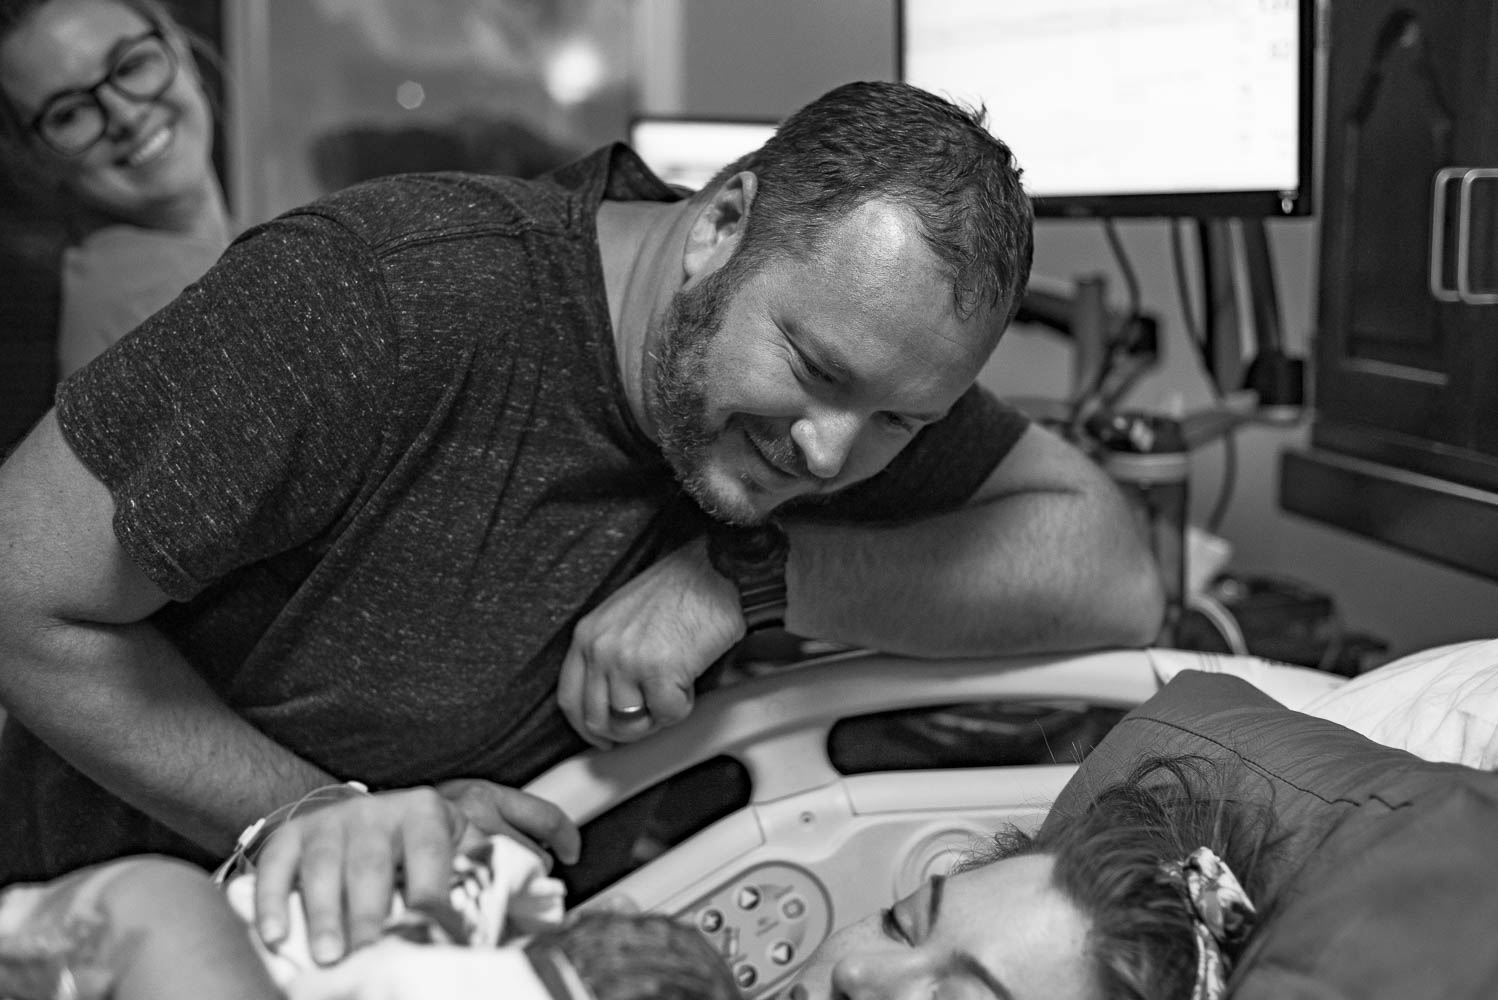 Dad smiling down lovingly at his new daughter while she lays on Mom's chest in the hospital bed.